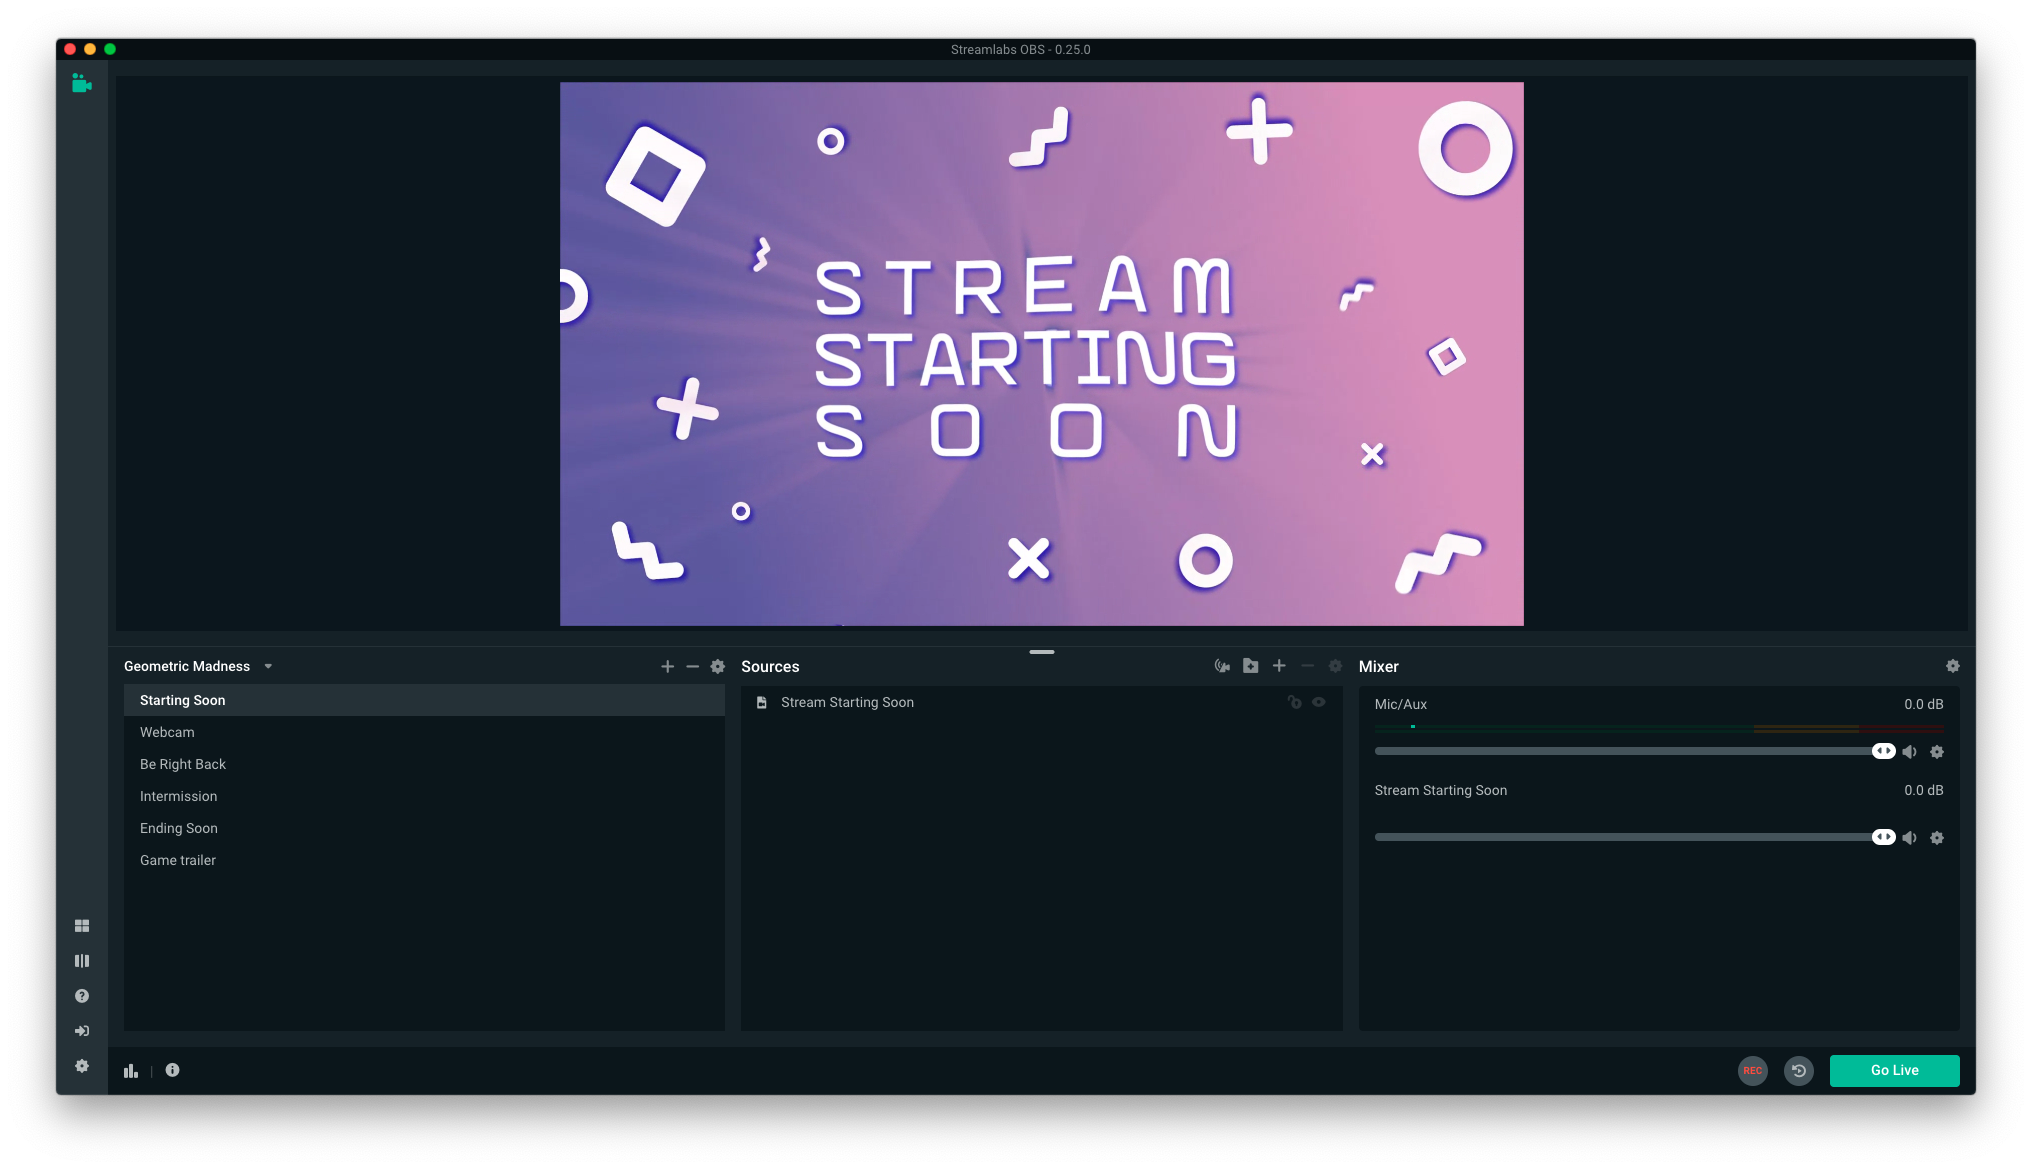 Screenshot of Streamlabs OBS interface